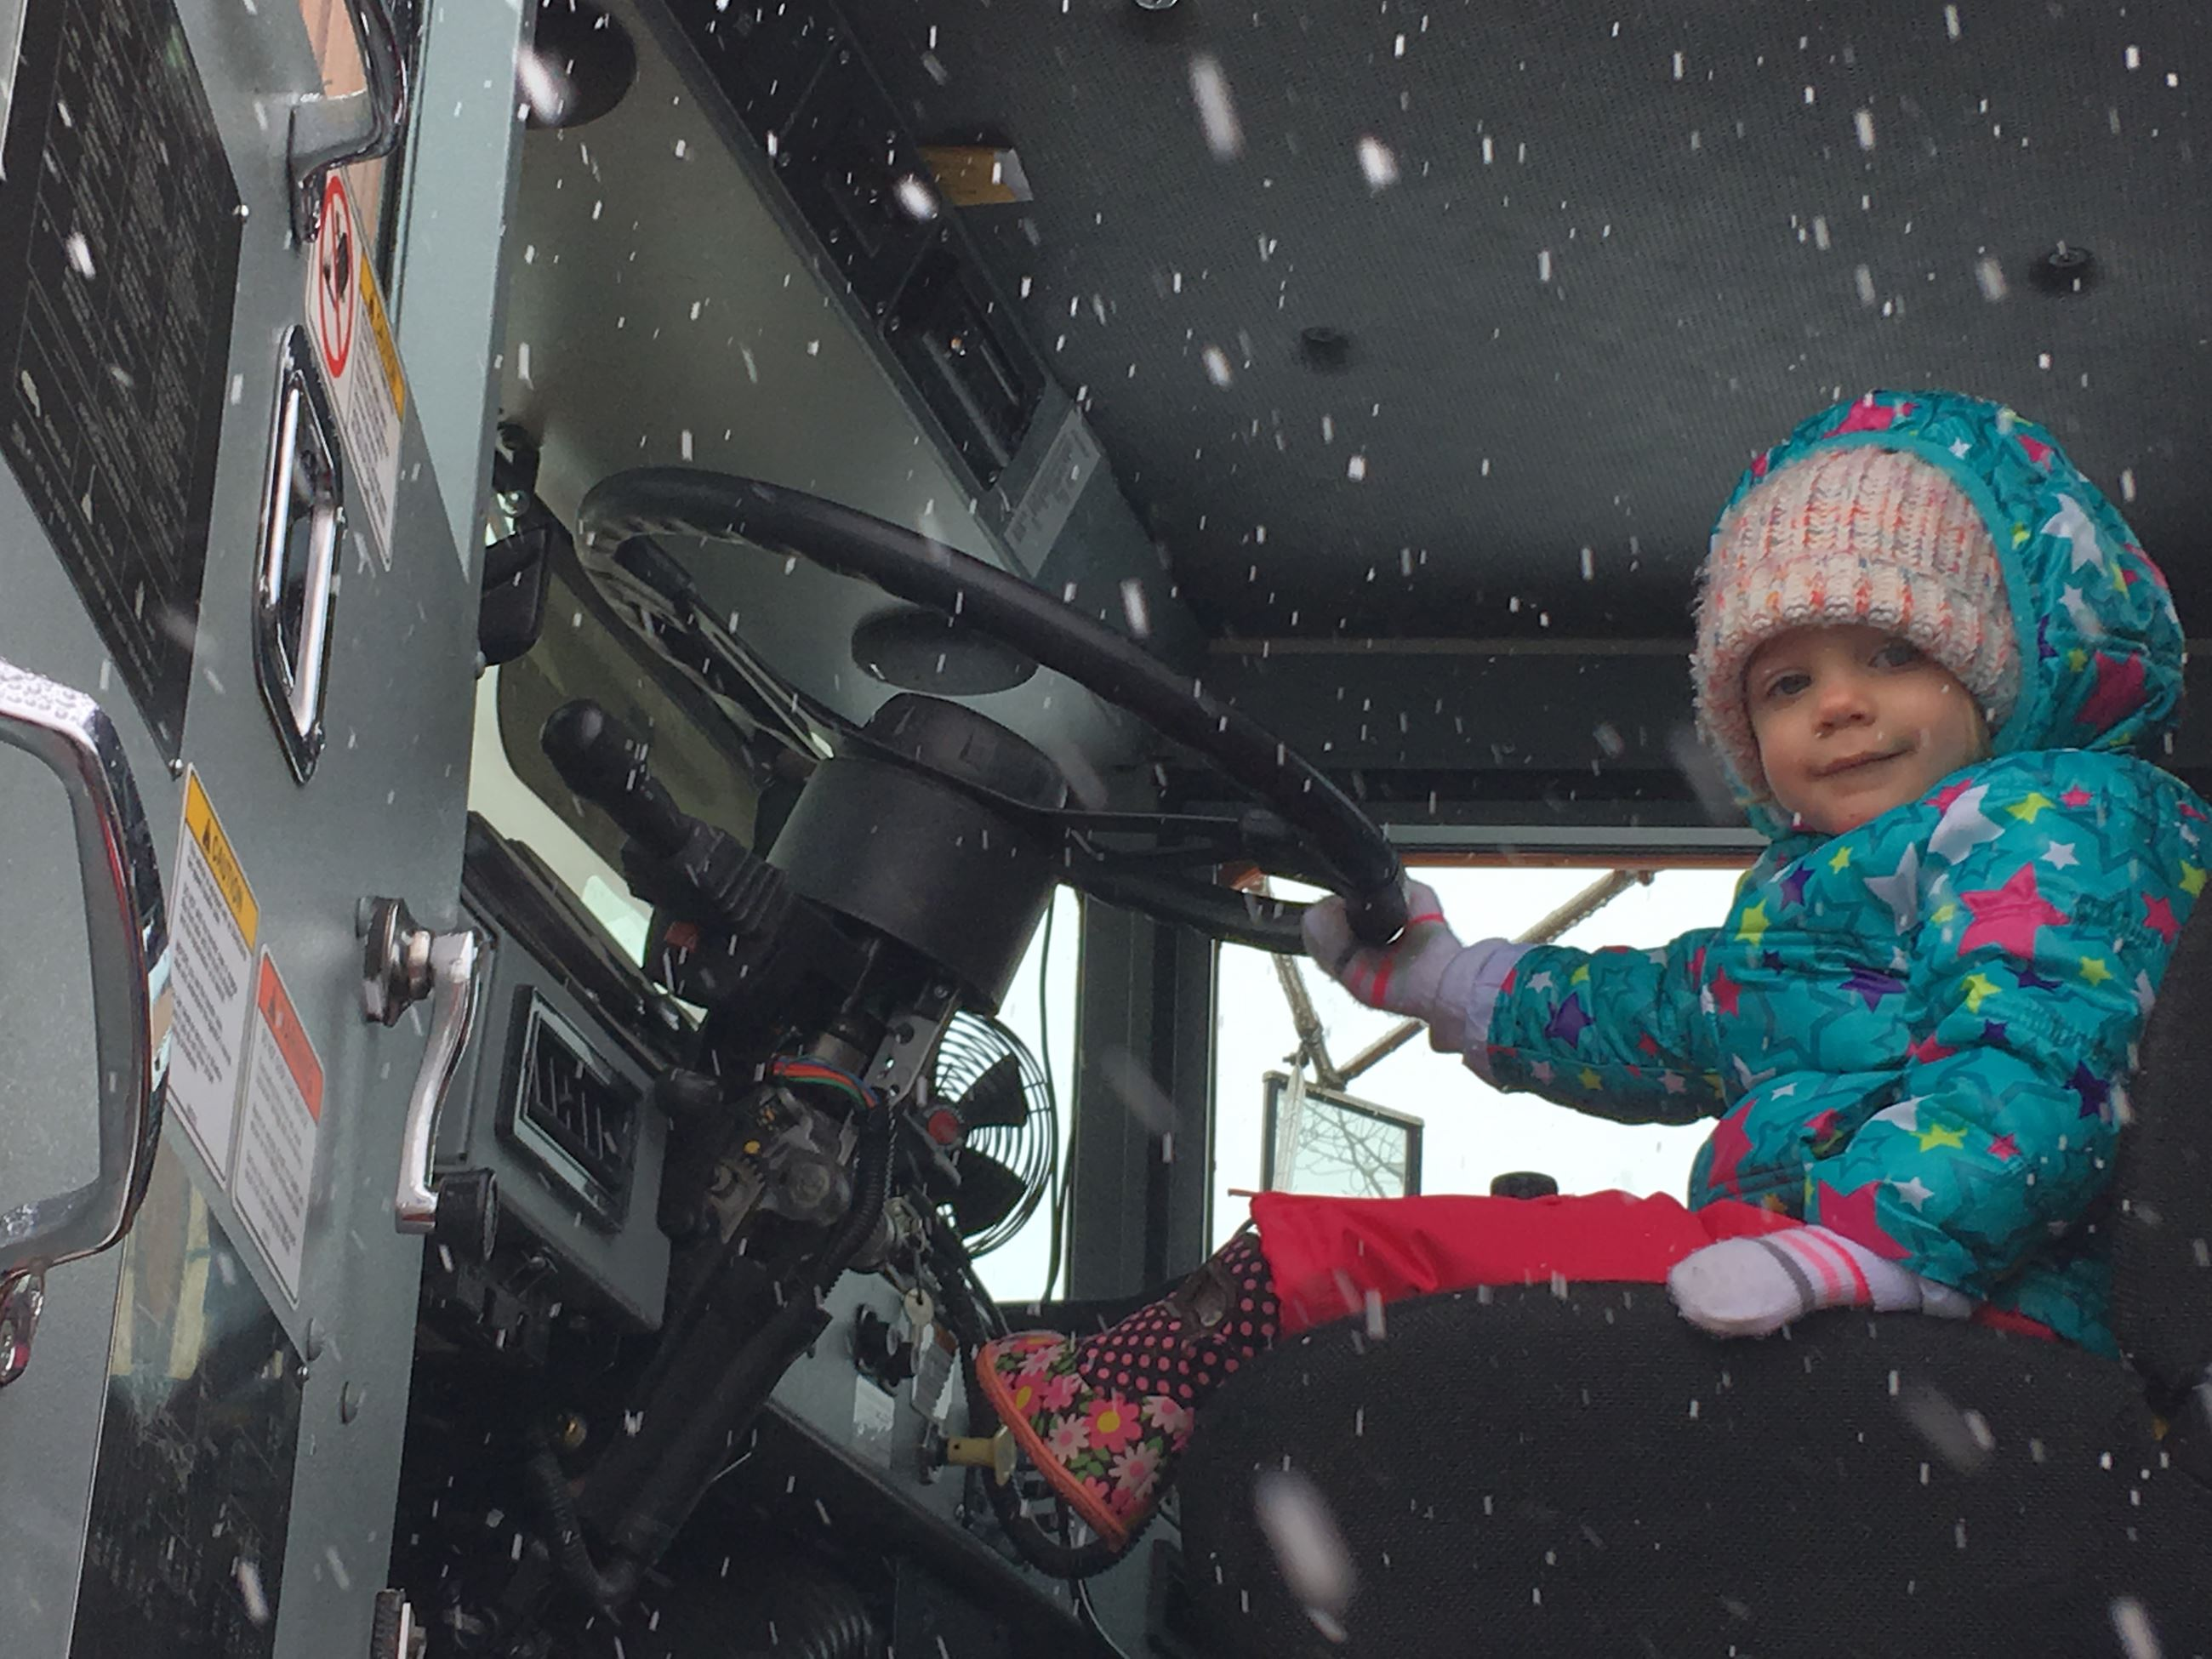 A toddler waves from the seat of a snowplow.